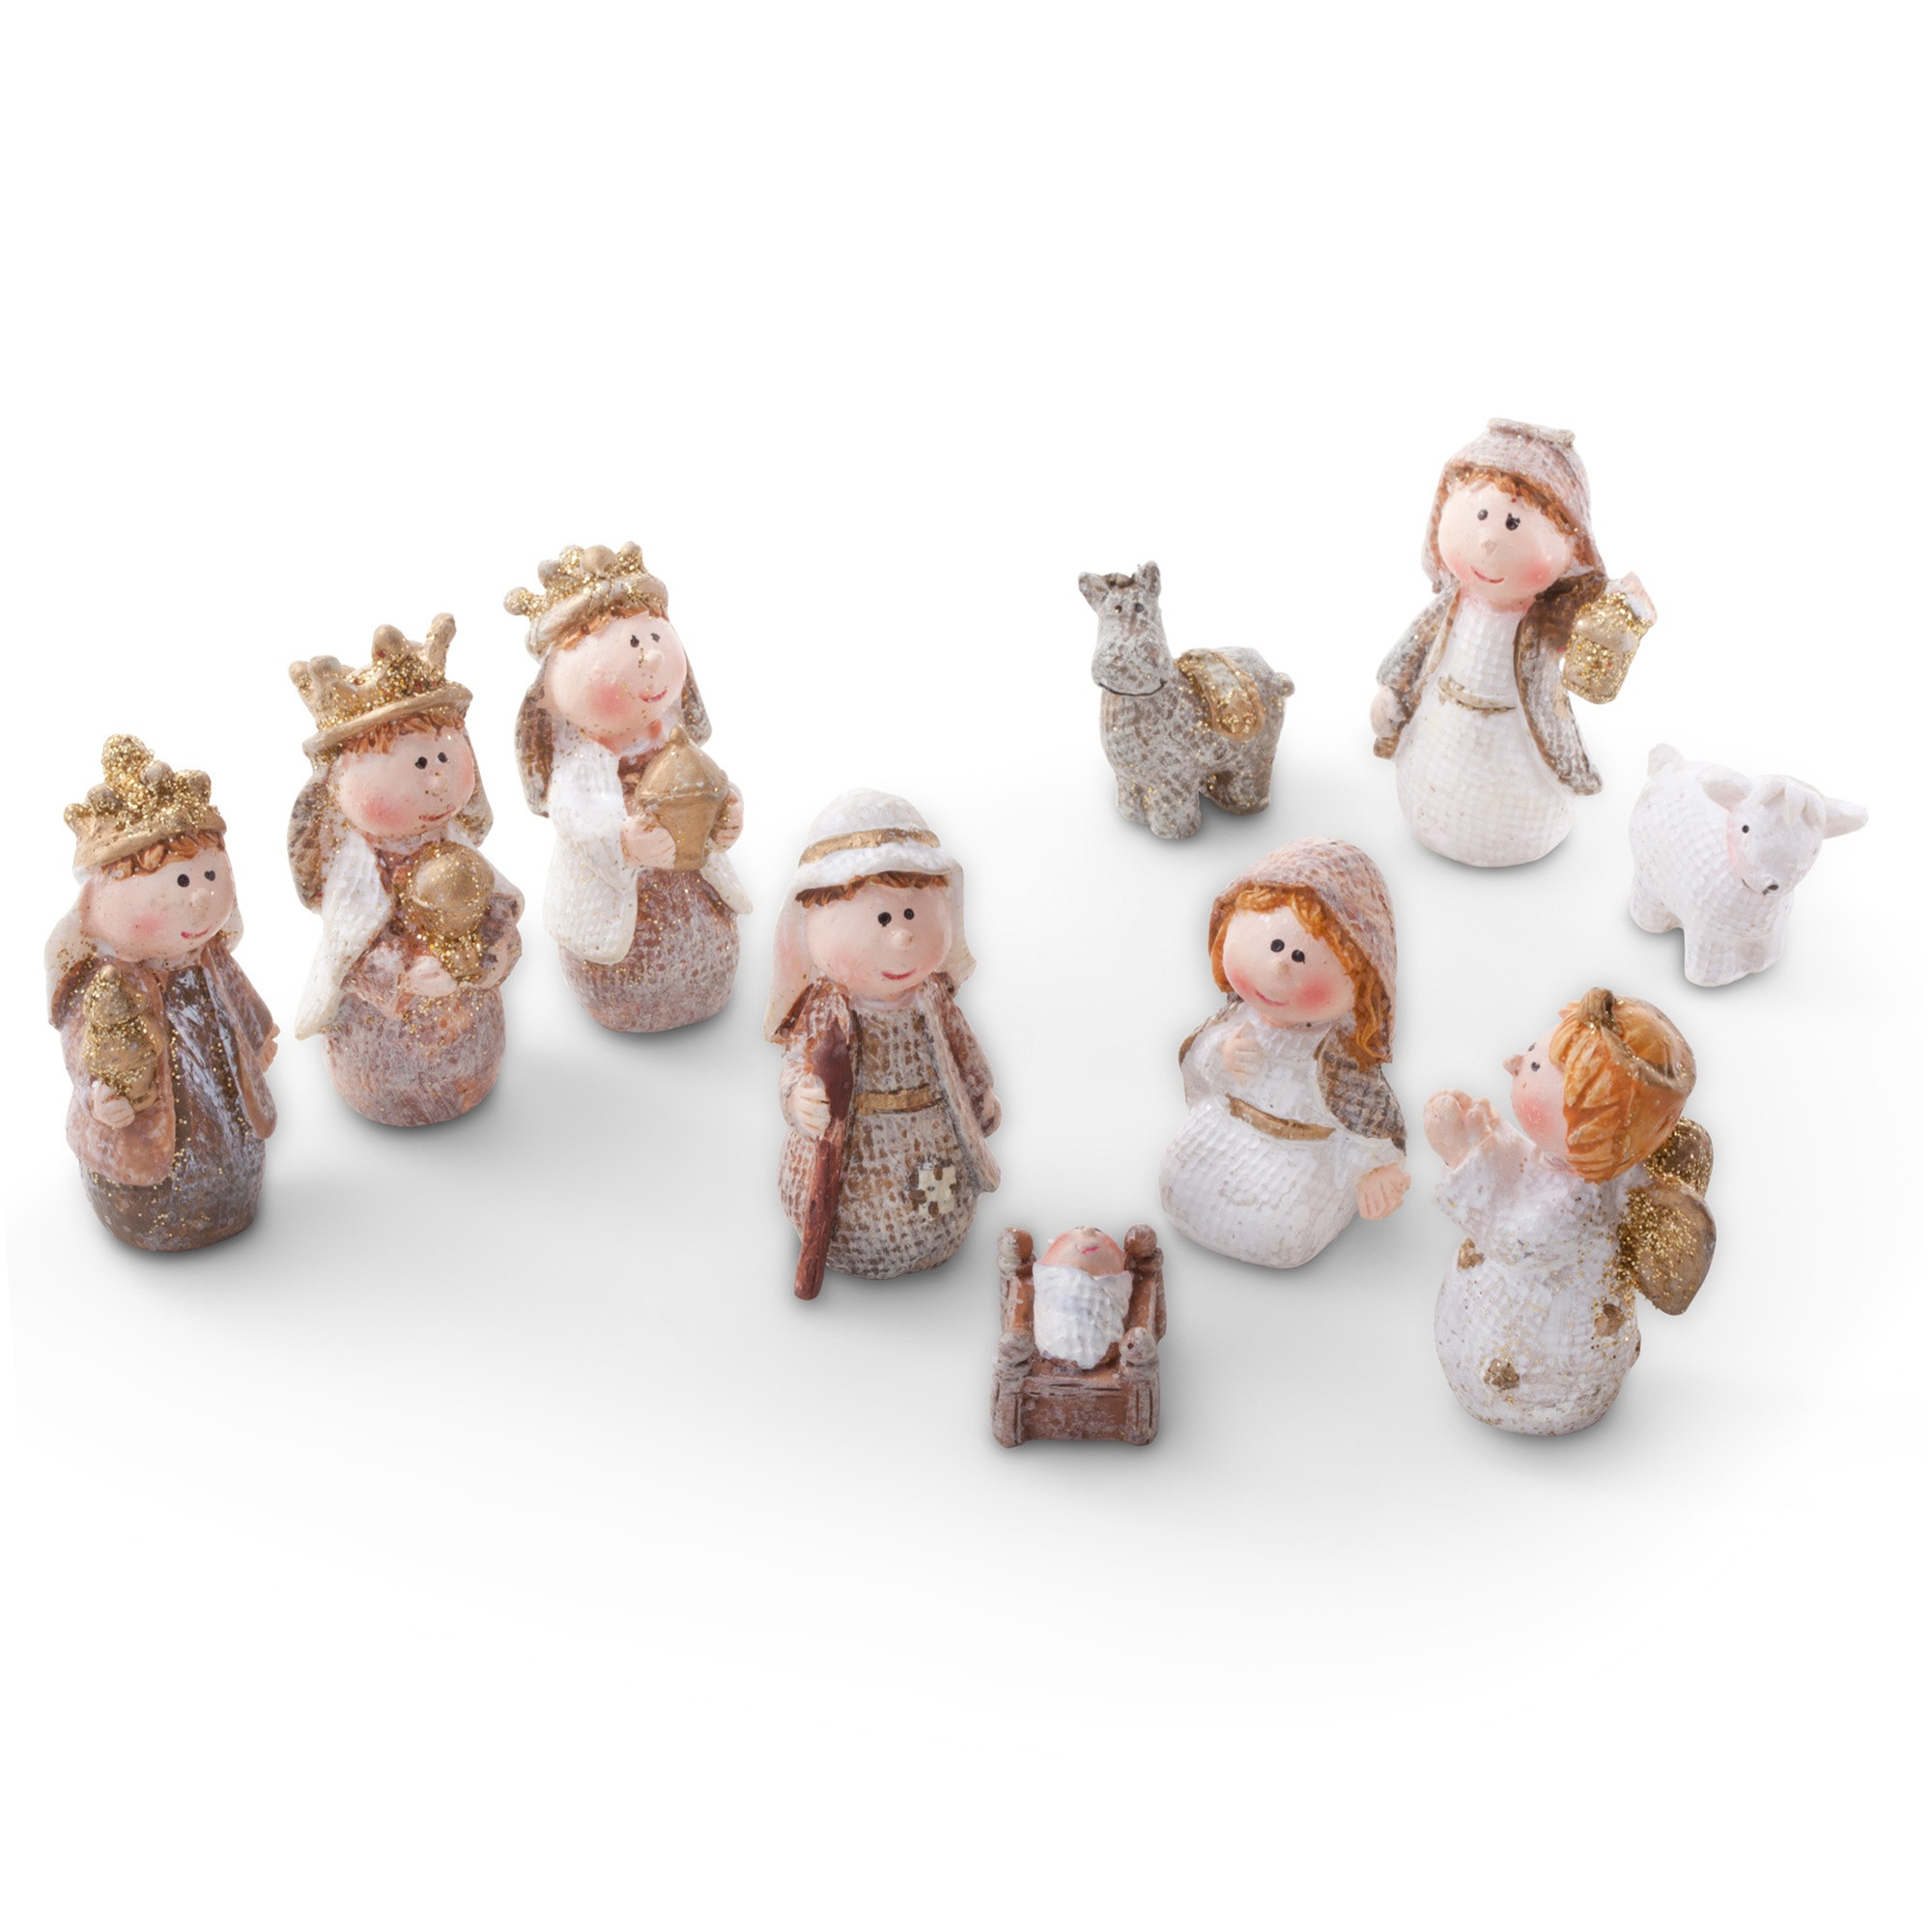 Christmas ornament Sets Beautiful Decor Inspiring Nativity Sets for Sale for Christmas Of Fresh 41 Models Christmas ornament Sets